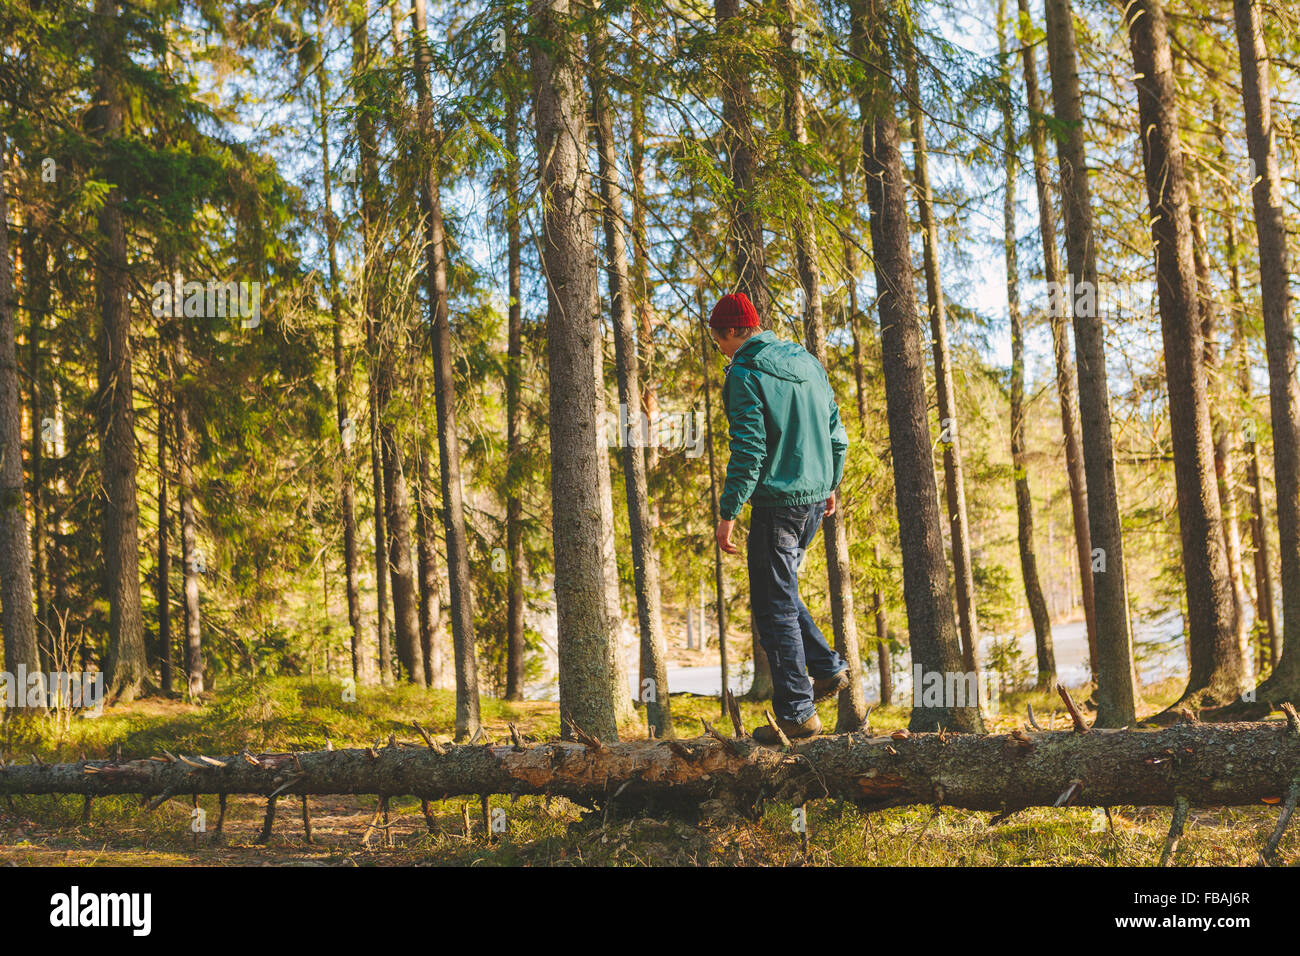 Finland, Esbo, Kvarntrask, Young man walking on trunk of fallen tree in forest - Stock Image